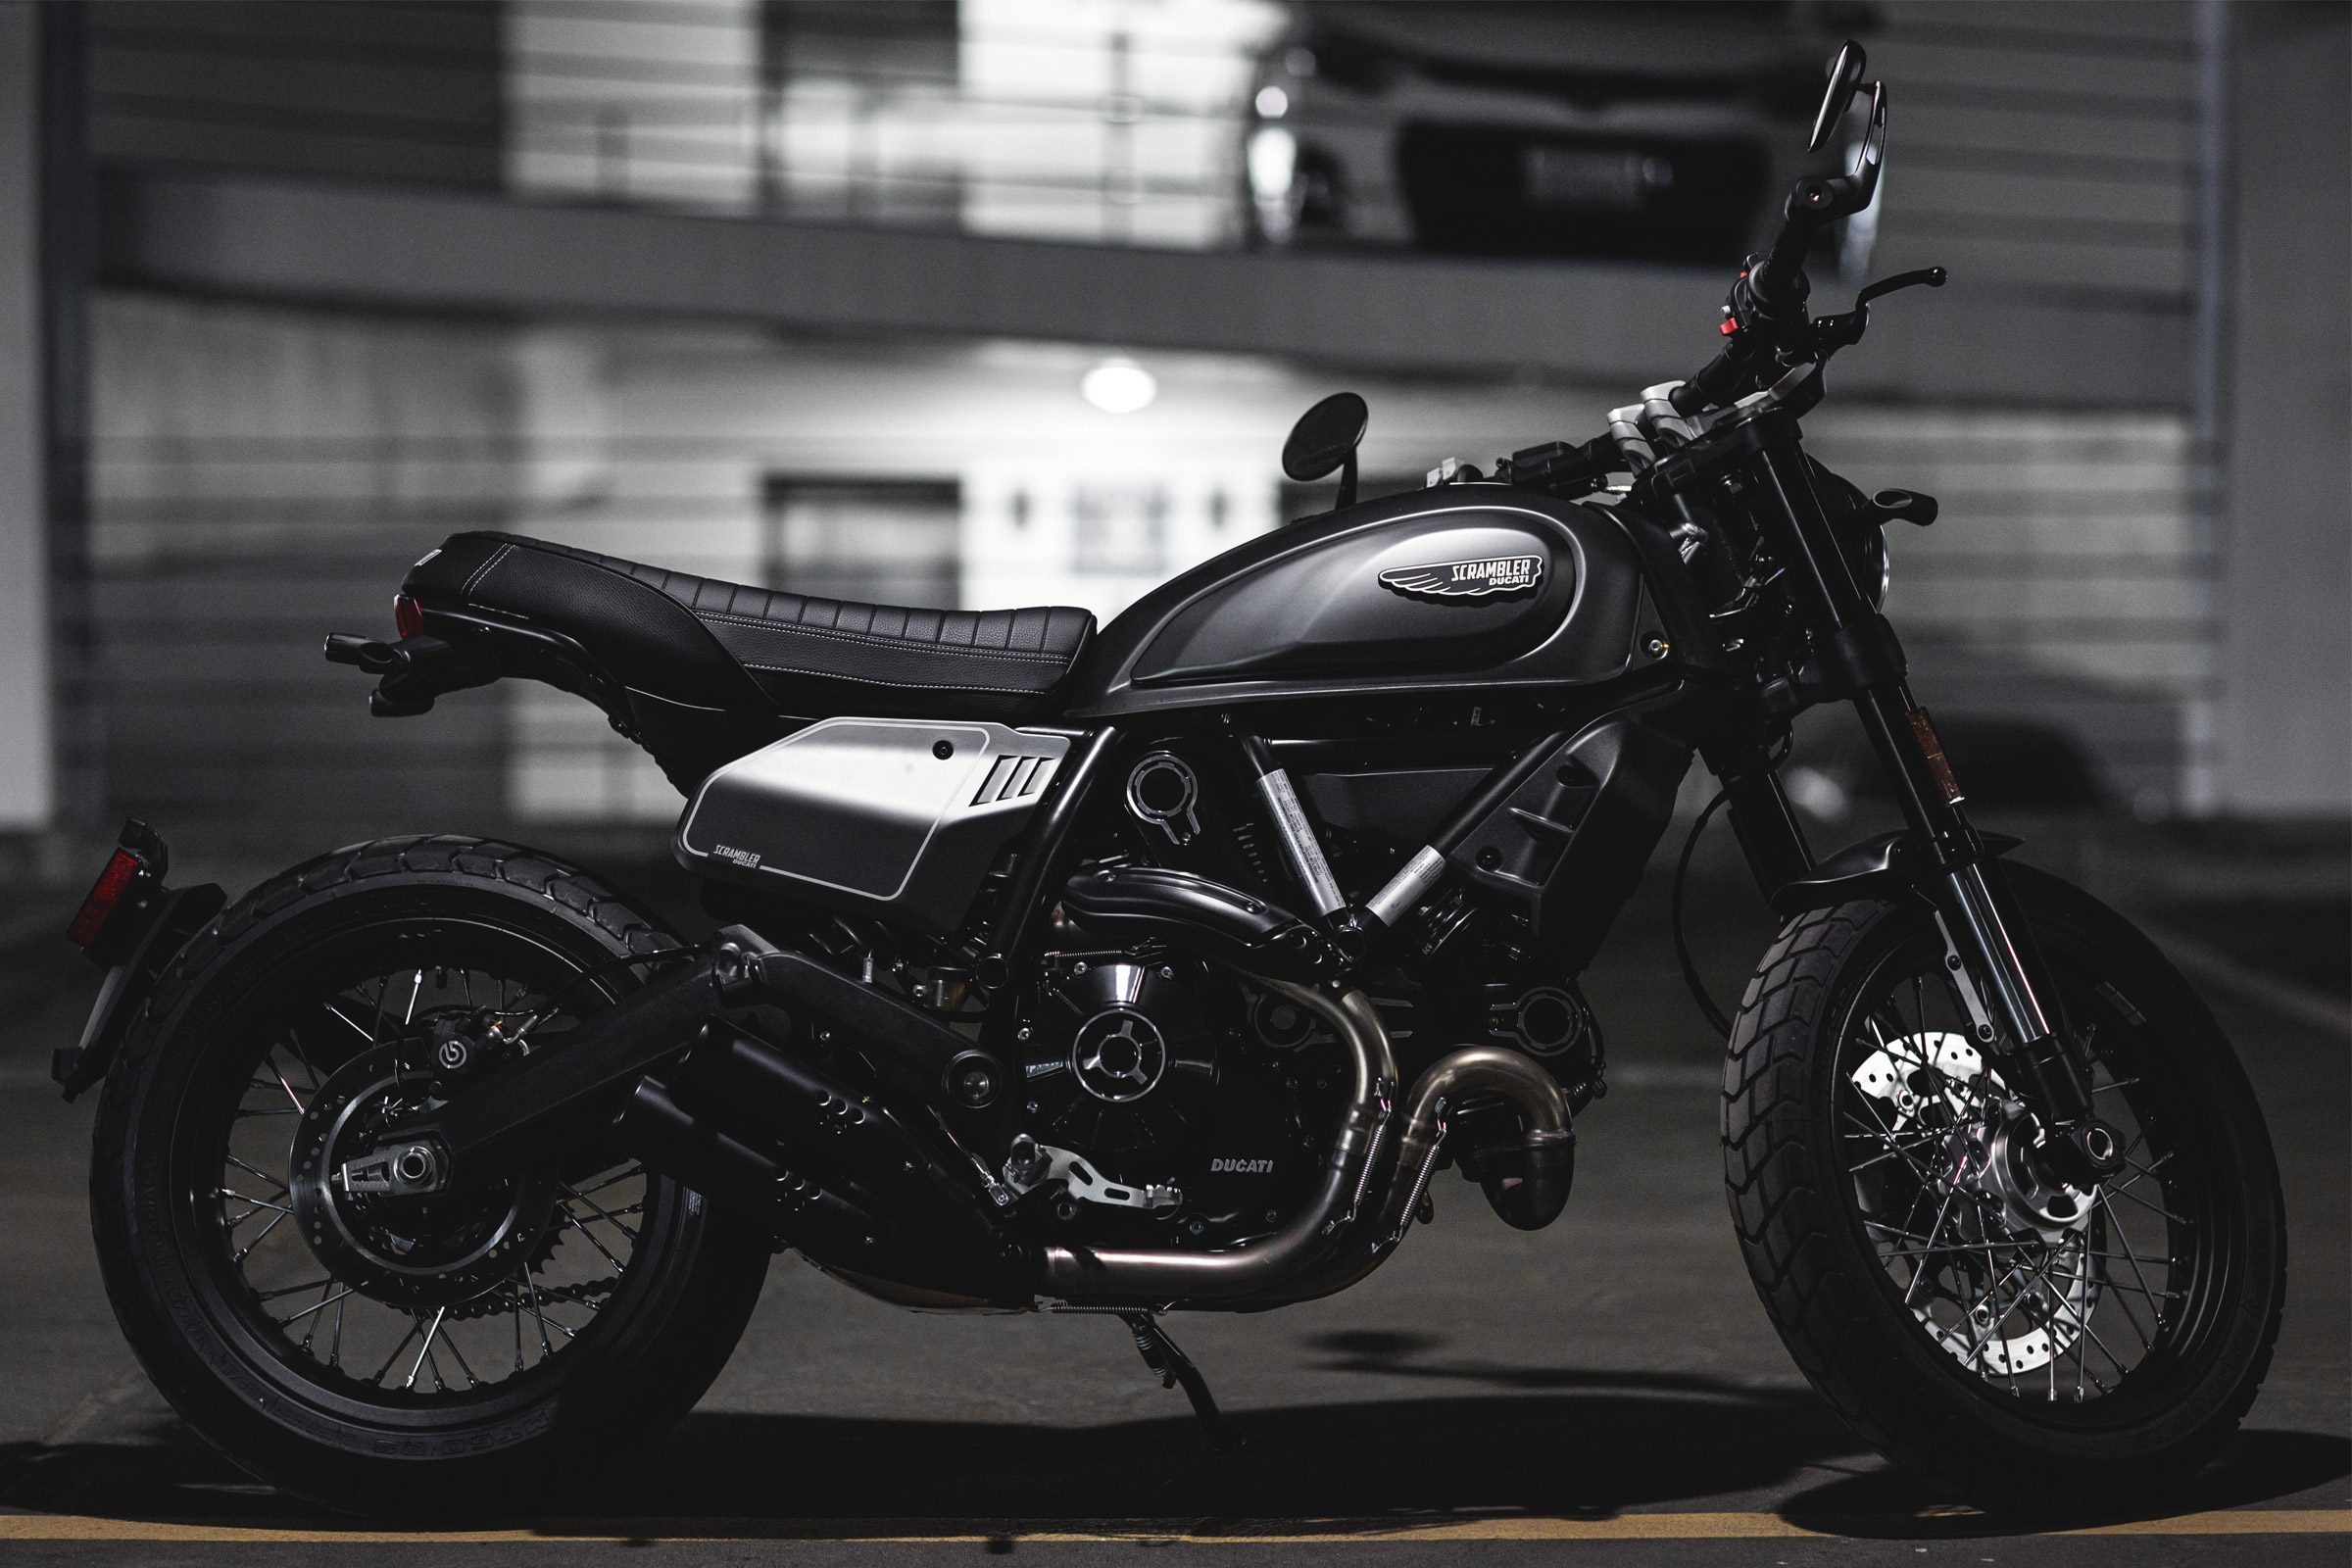 2021 Ducati Scrambler Nightshift: A Classic Gets a Stealthy Makeover